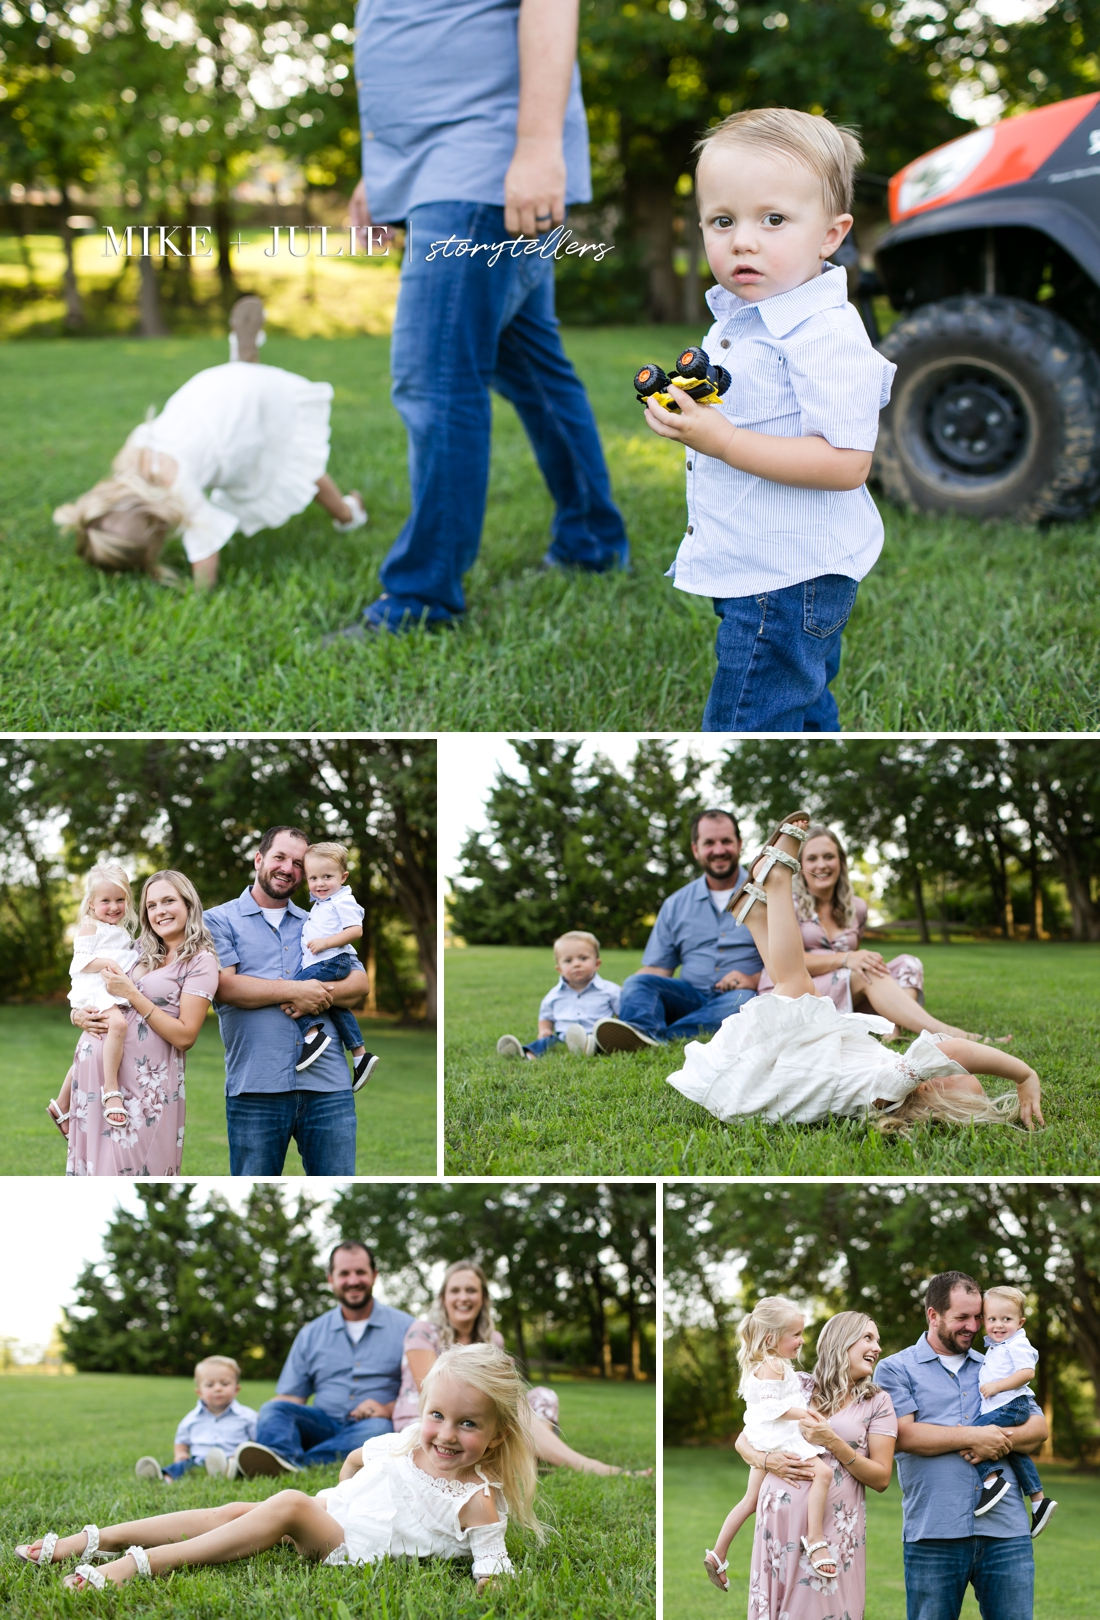 energetic filled with life family photo session picture